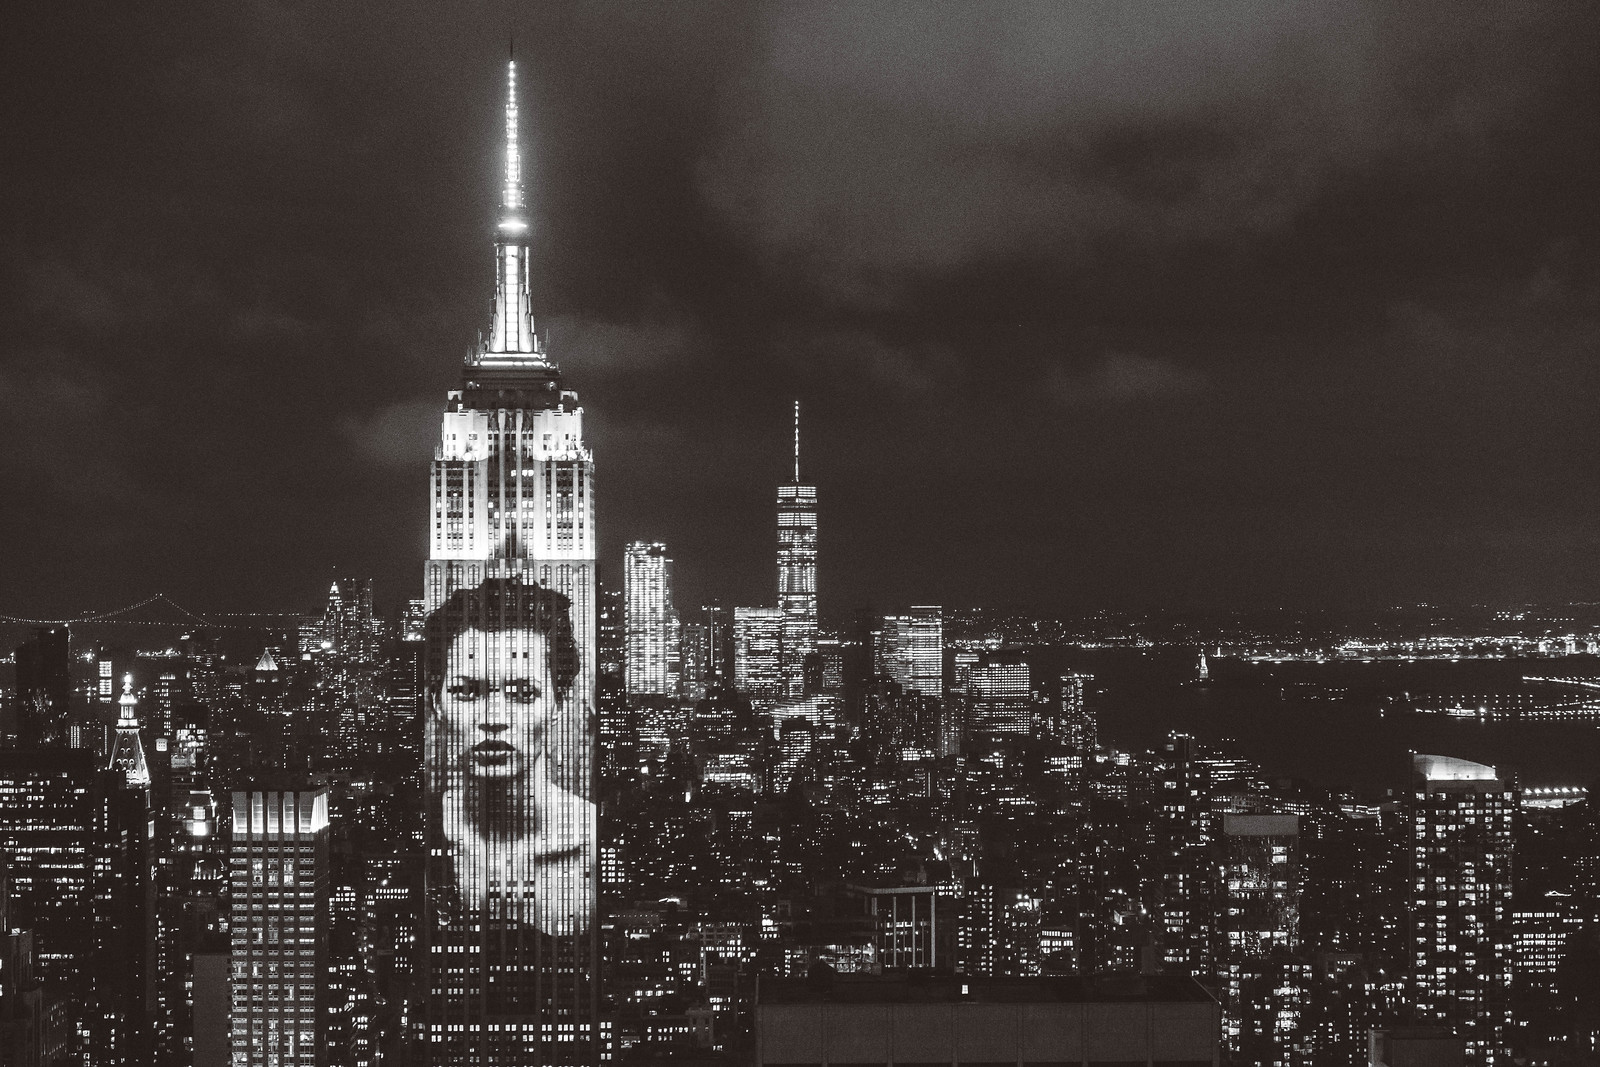 Harper's Bazaar 150 Year Anniversary on Empire State Building - Kate Moss by Peter Lindbergh